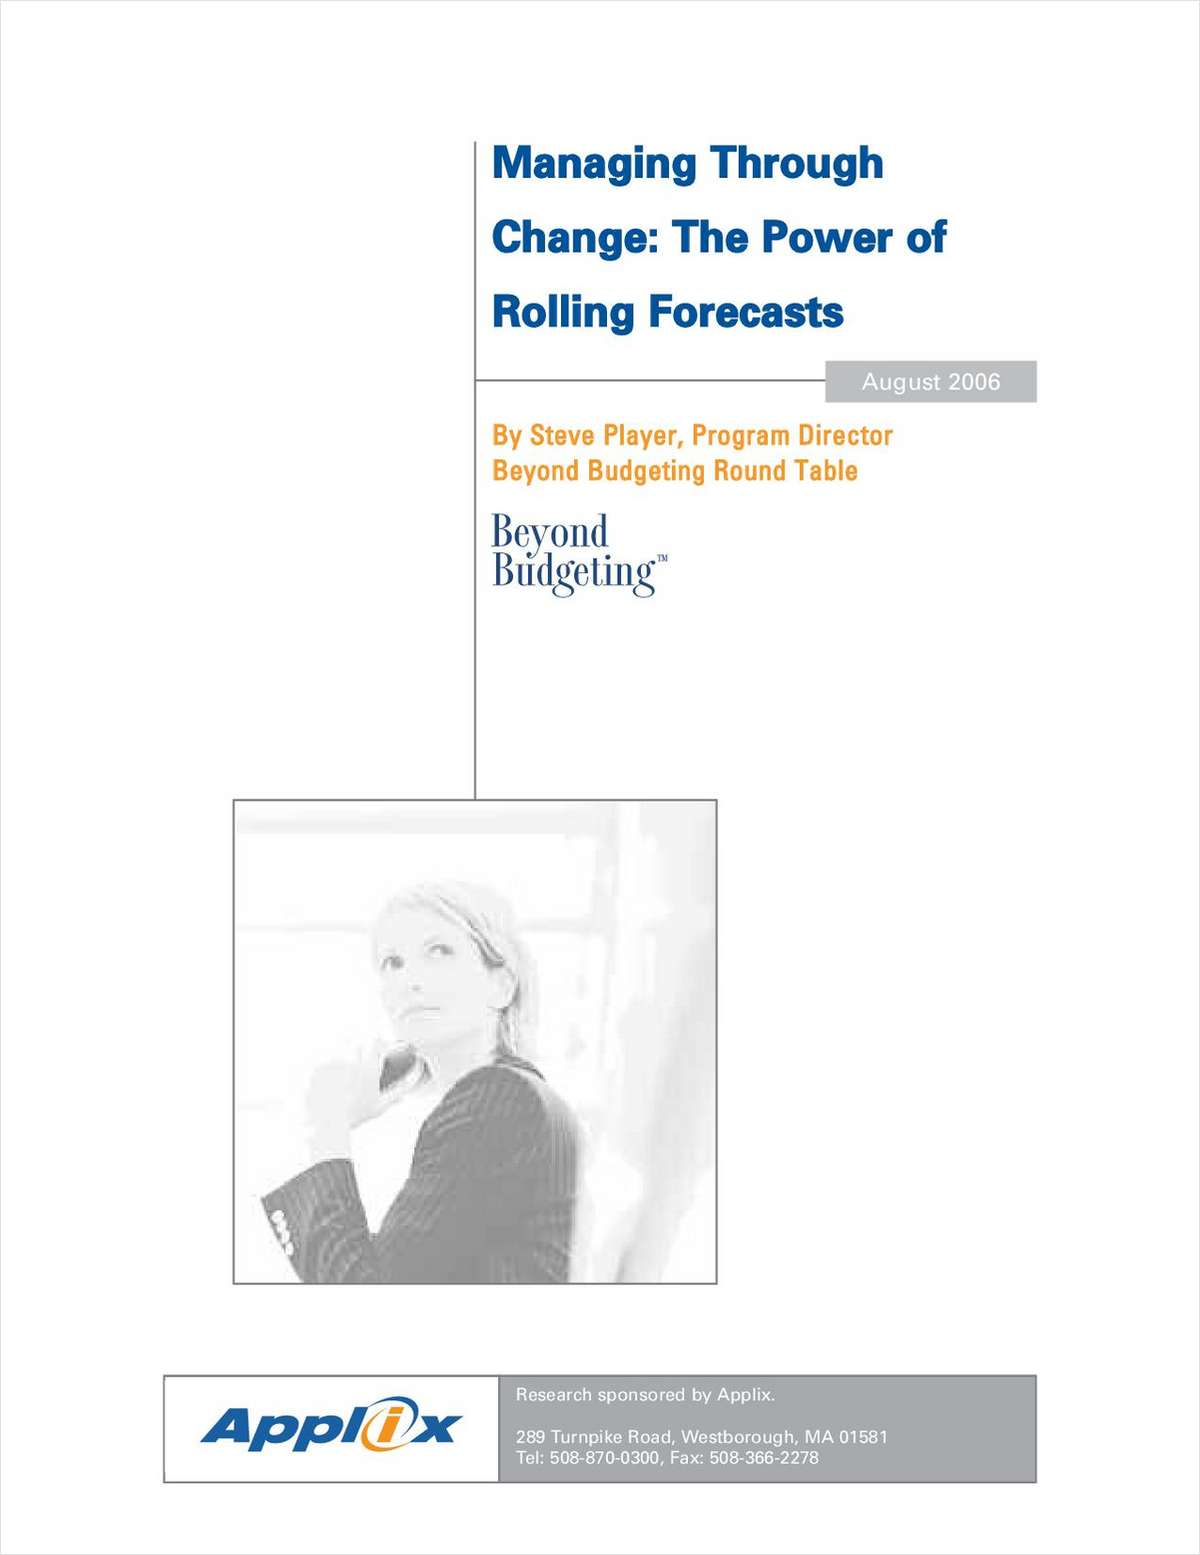 Managing Through Change: The Power of Rolling Forecasts, By Steve Player, Beyond Budgeting Round Table